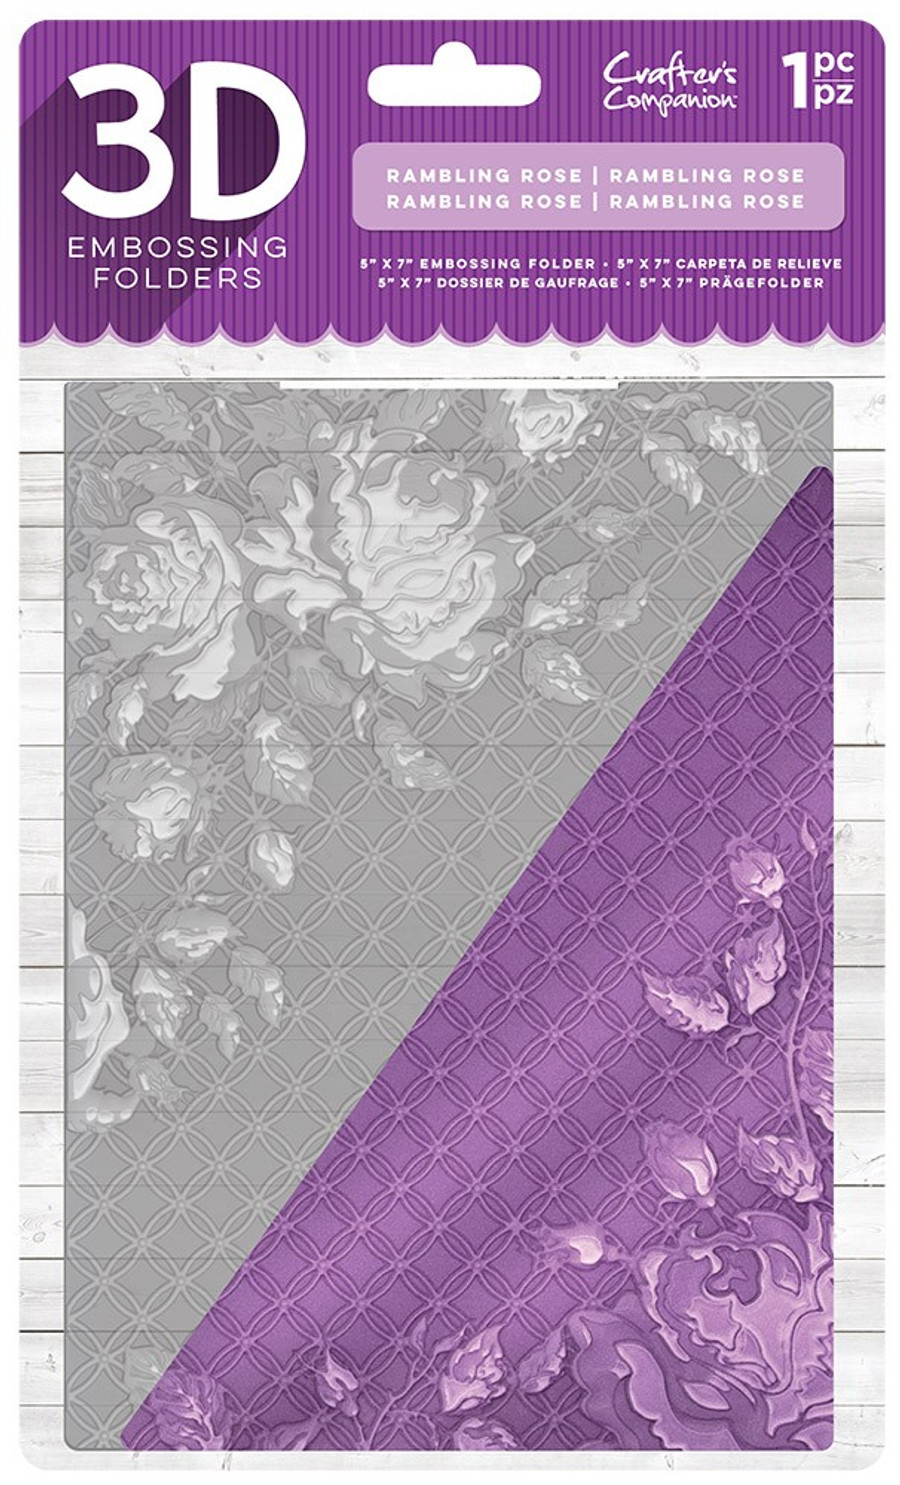 "Crafter's Companion 3D Embossing Folder 5"" x 7""- Rambling Rose"